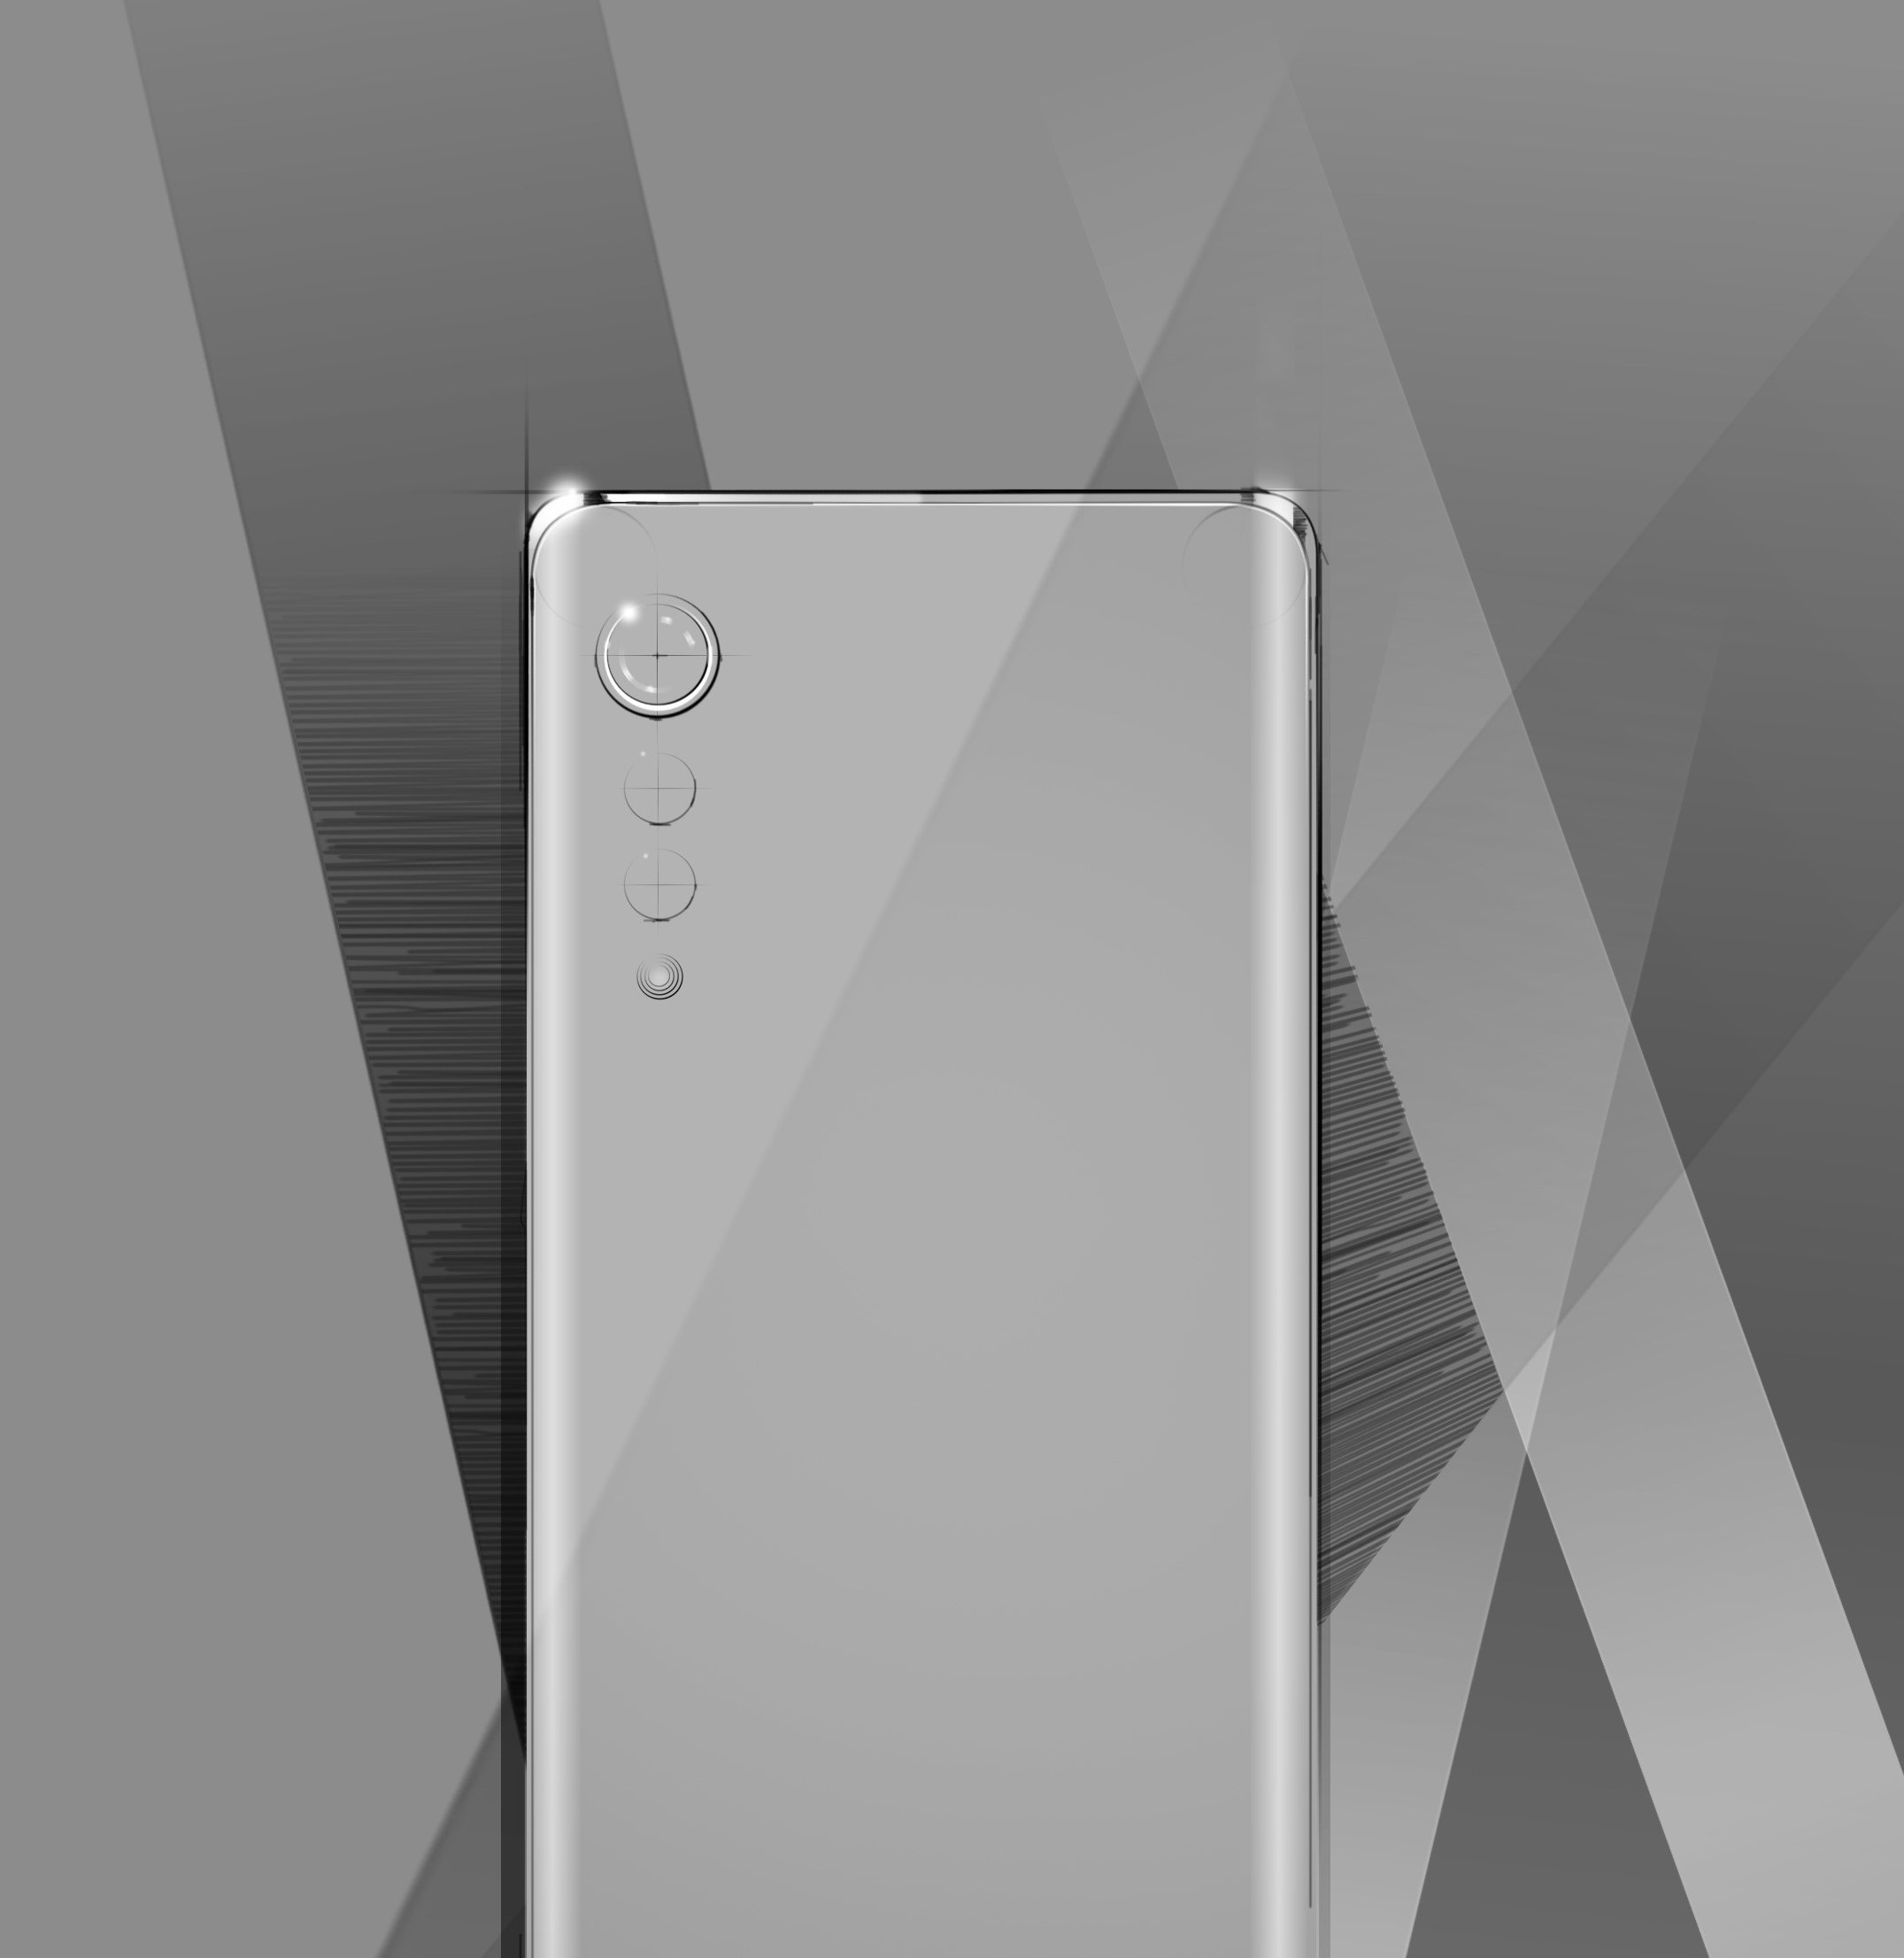 20200411.LG'S-NEW-DESIGN-LANGUAGE-TAPS-INTO-NATURE-WITH-VISUAL-ELEGANCE-TACTILE-PERFECTION-02.jpg